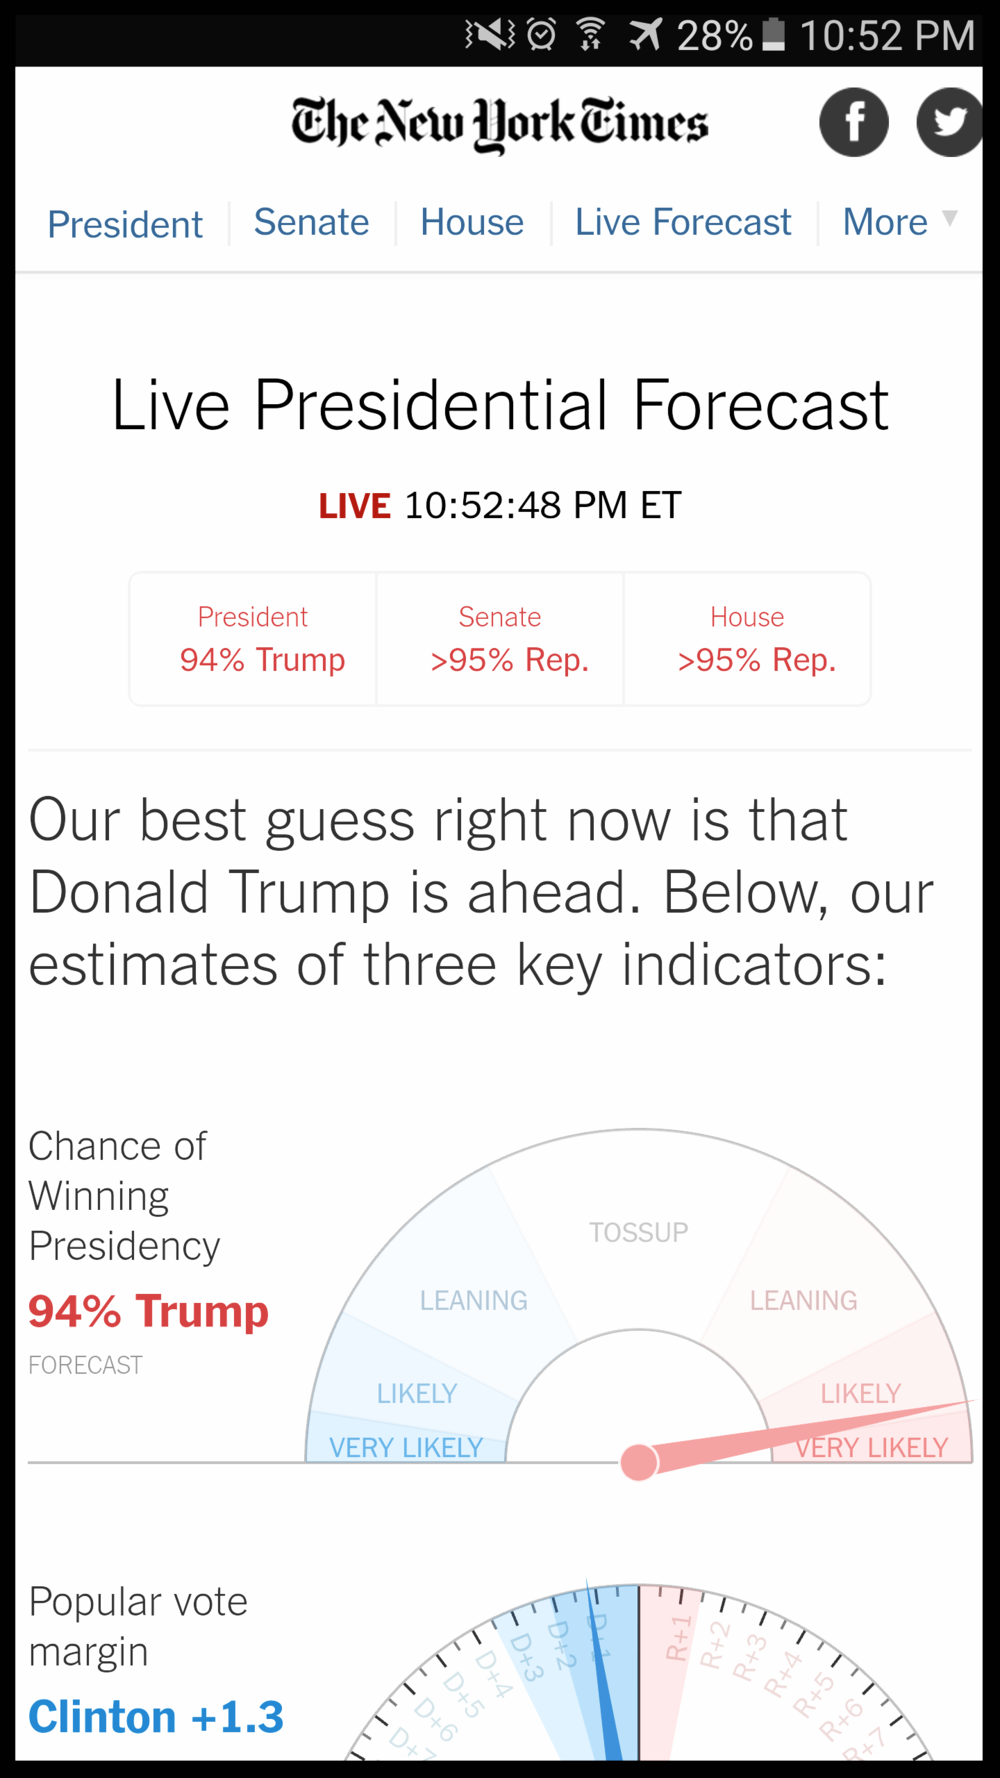 NYT forecaster calls a 94% chance            of a Trump victory before 11pm.